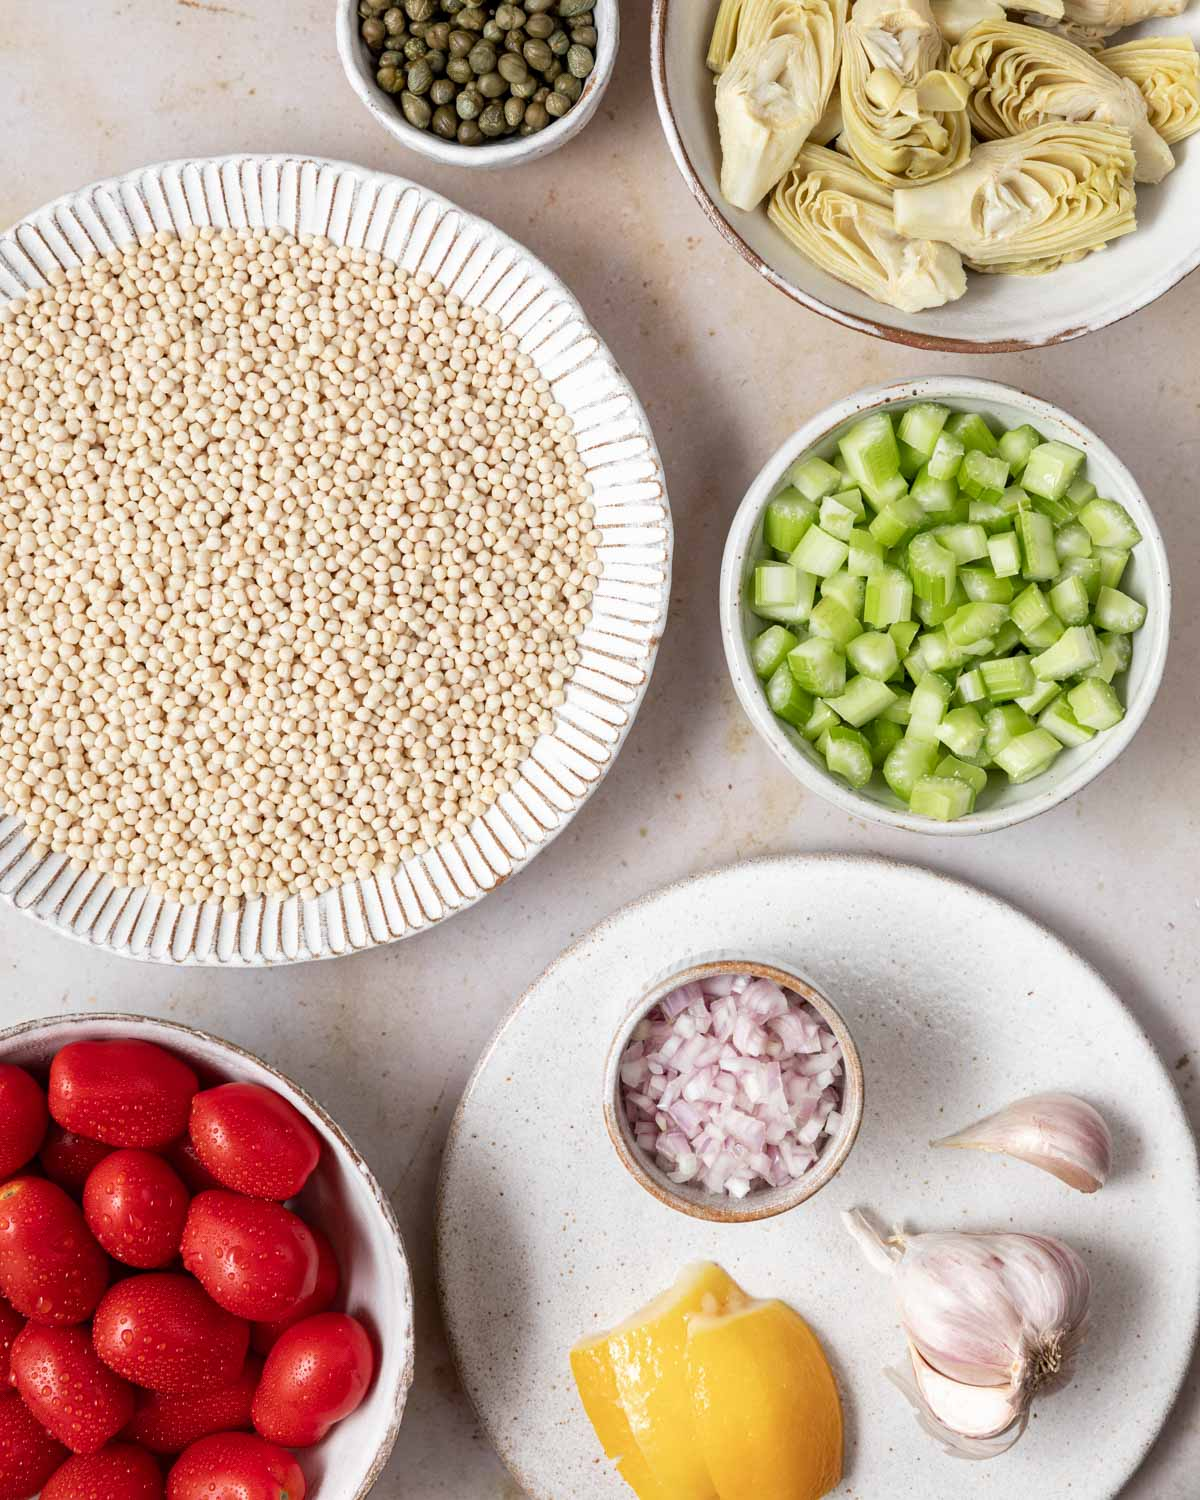 An overhead view of the ingredients needed for this recipe, including pearl couscous, tomatoes, celery, and artichoke hearts